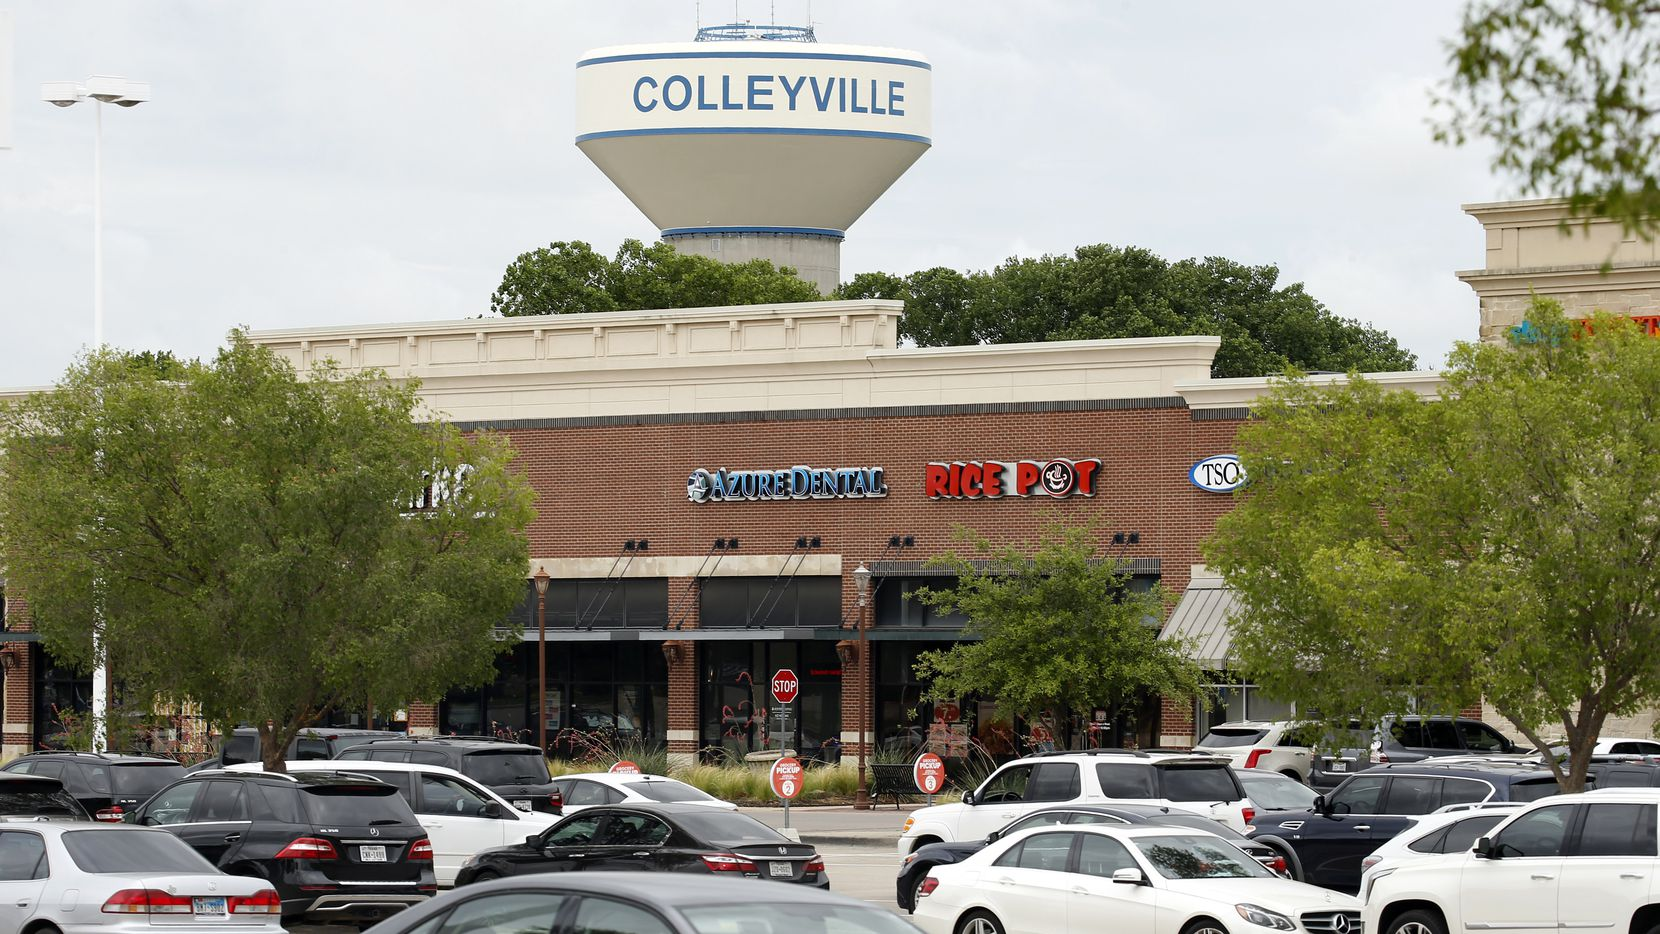 A Colleyville water tower is pictured near a shopping center in this June file photo. Mayor Richard Newton recently announced that he received his first dose of the COVID-19 vaccine, saying that he hoped other Colleyville residents will follow suit.